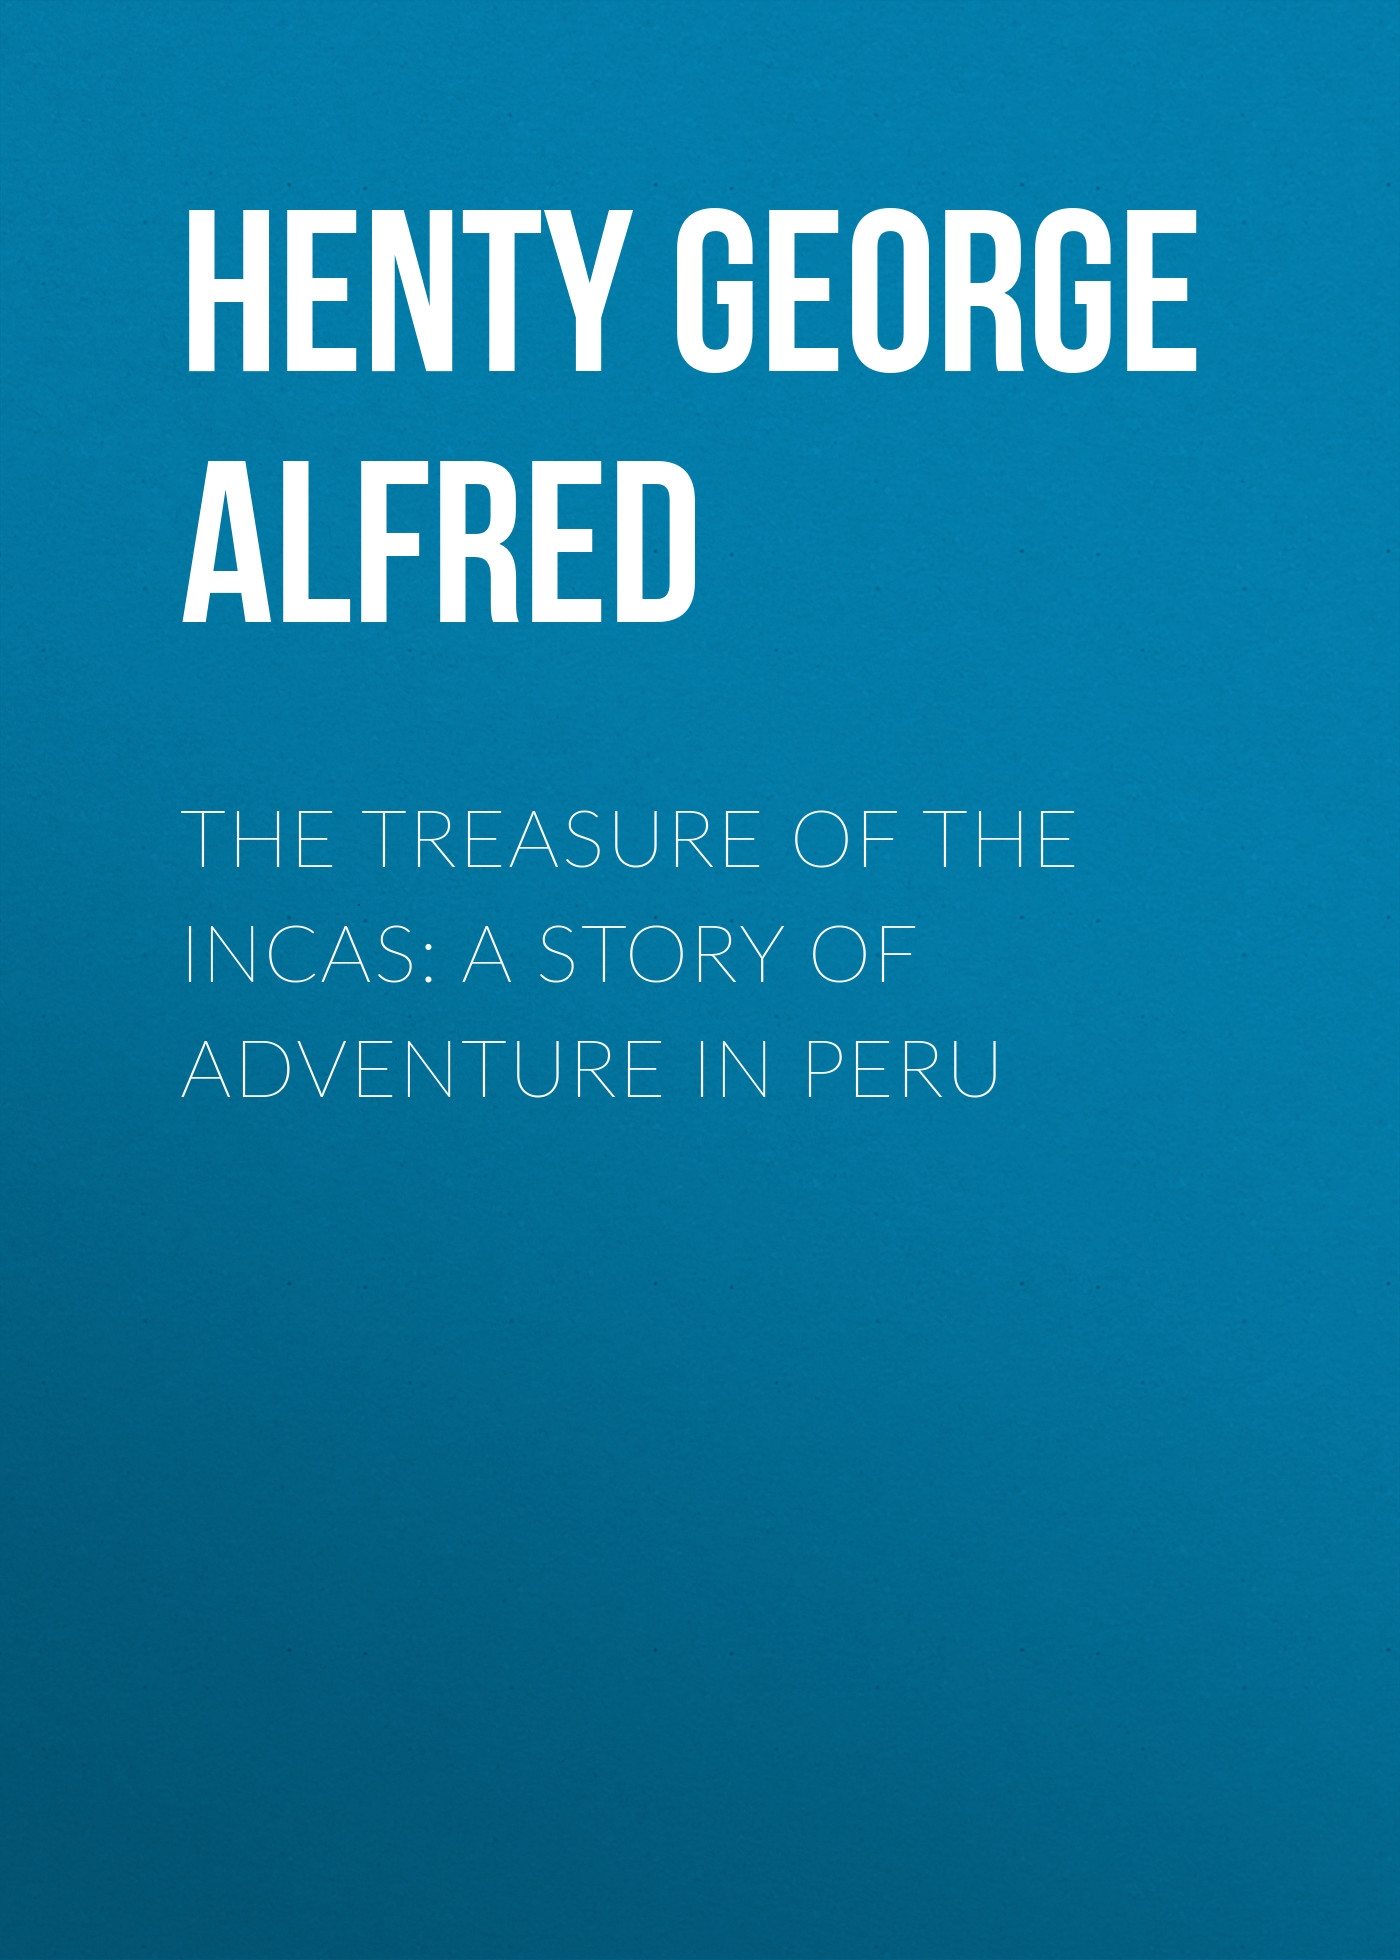 Henty George Alfred The Treasure of the Incas: A Story of Adventure in Peru george alfred henty with lee in virginia a story of the american civil war